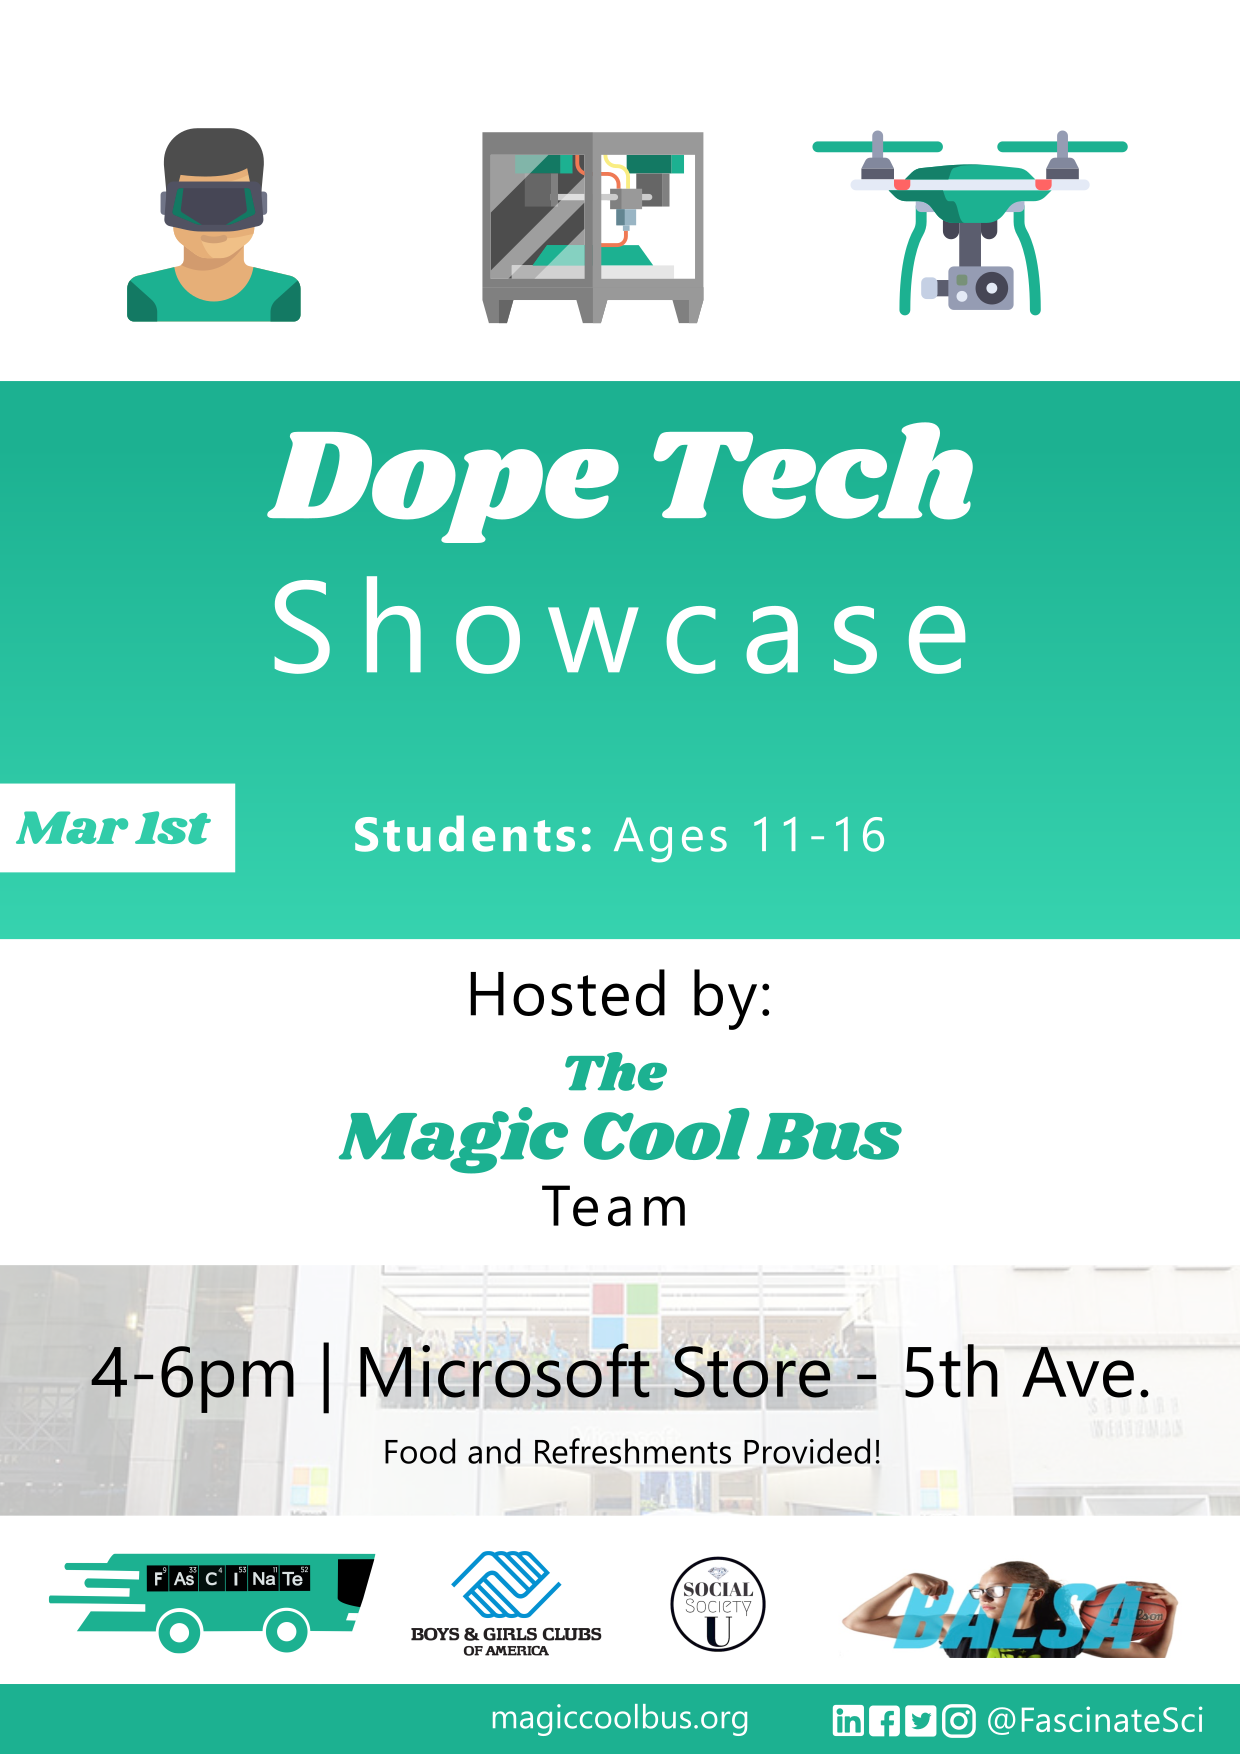 Our  Dope Tech Showcase  was a major success! Students from Great Oaks Charter School, the Boys and Girls Club, and the Harlem Children Zone all got to see the cool side of STEM at Microsoft's Flagship Store! Click to see more!